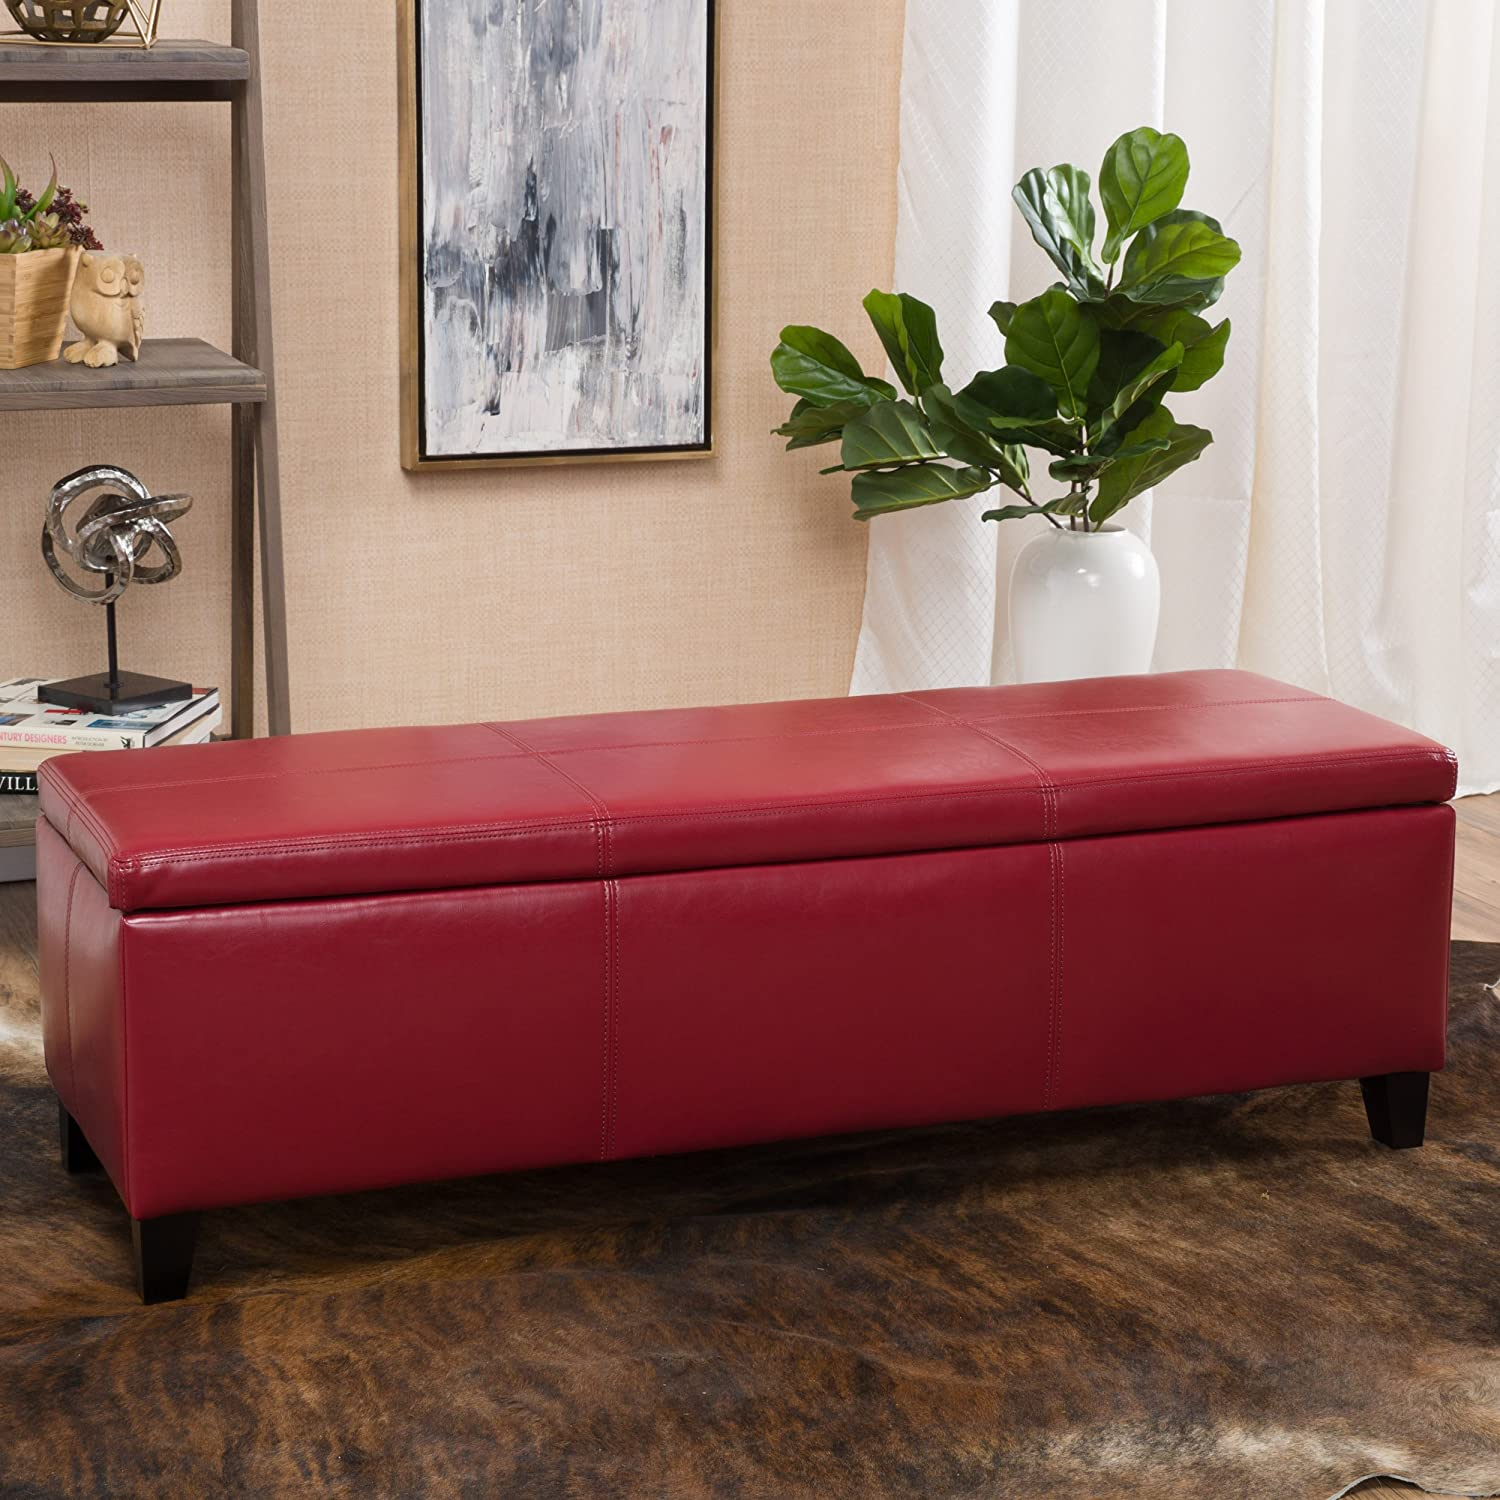 Amazon.com: Christopher Knight Home 296847 Living Skyler Red Leather  Storage Ottoman Bench: Kitchen U0026 Dining